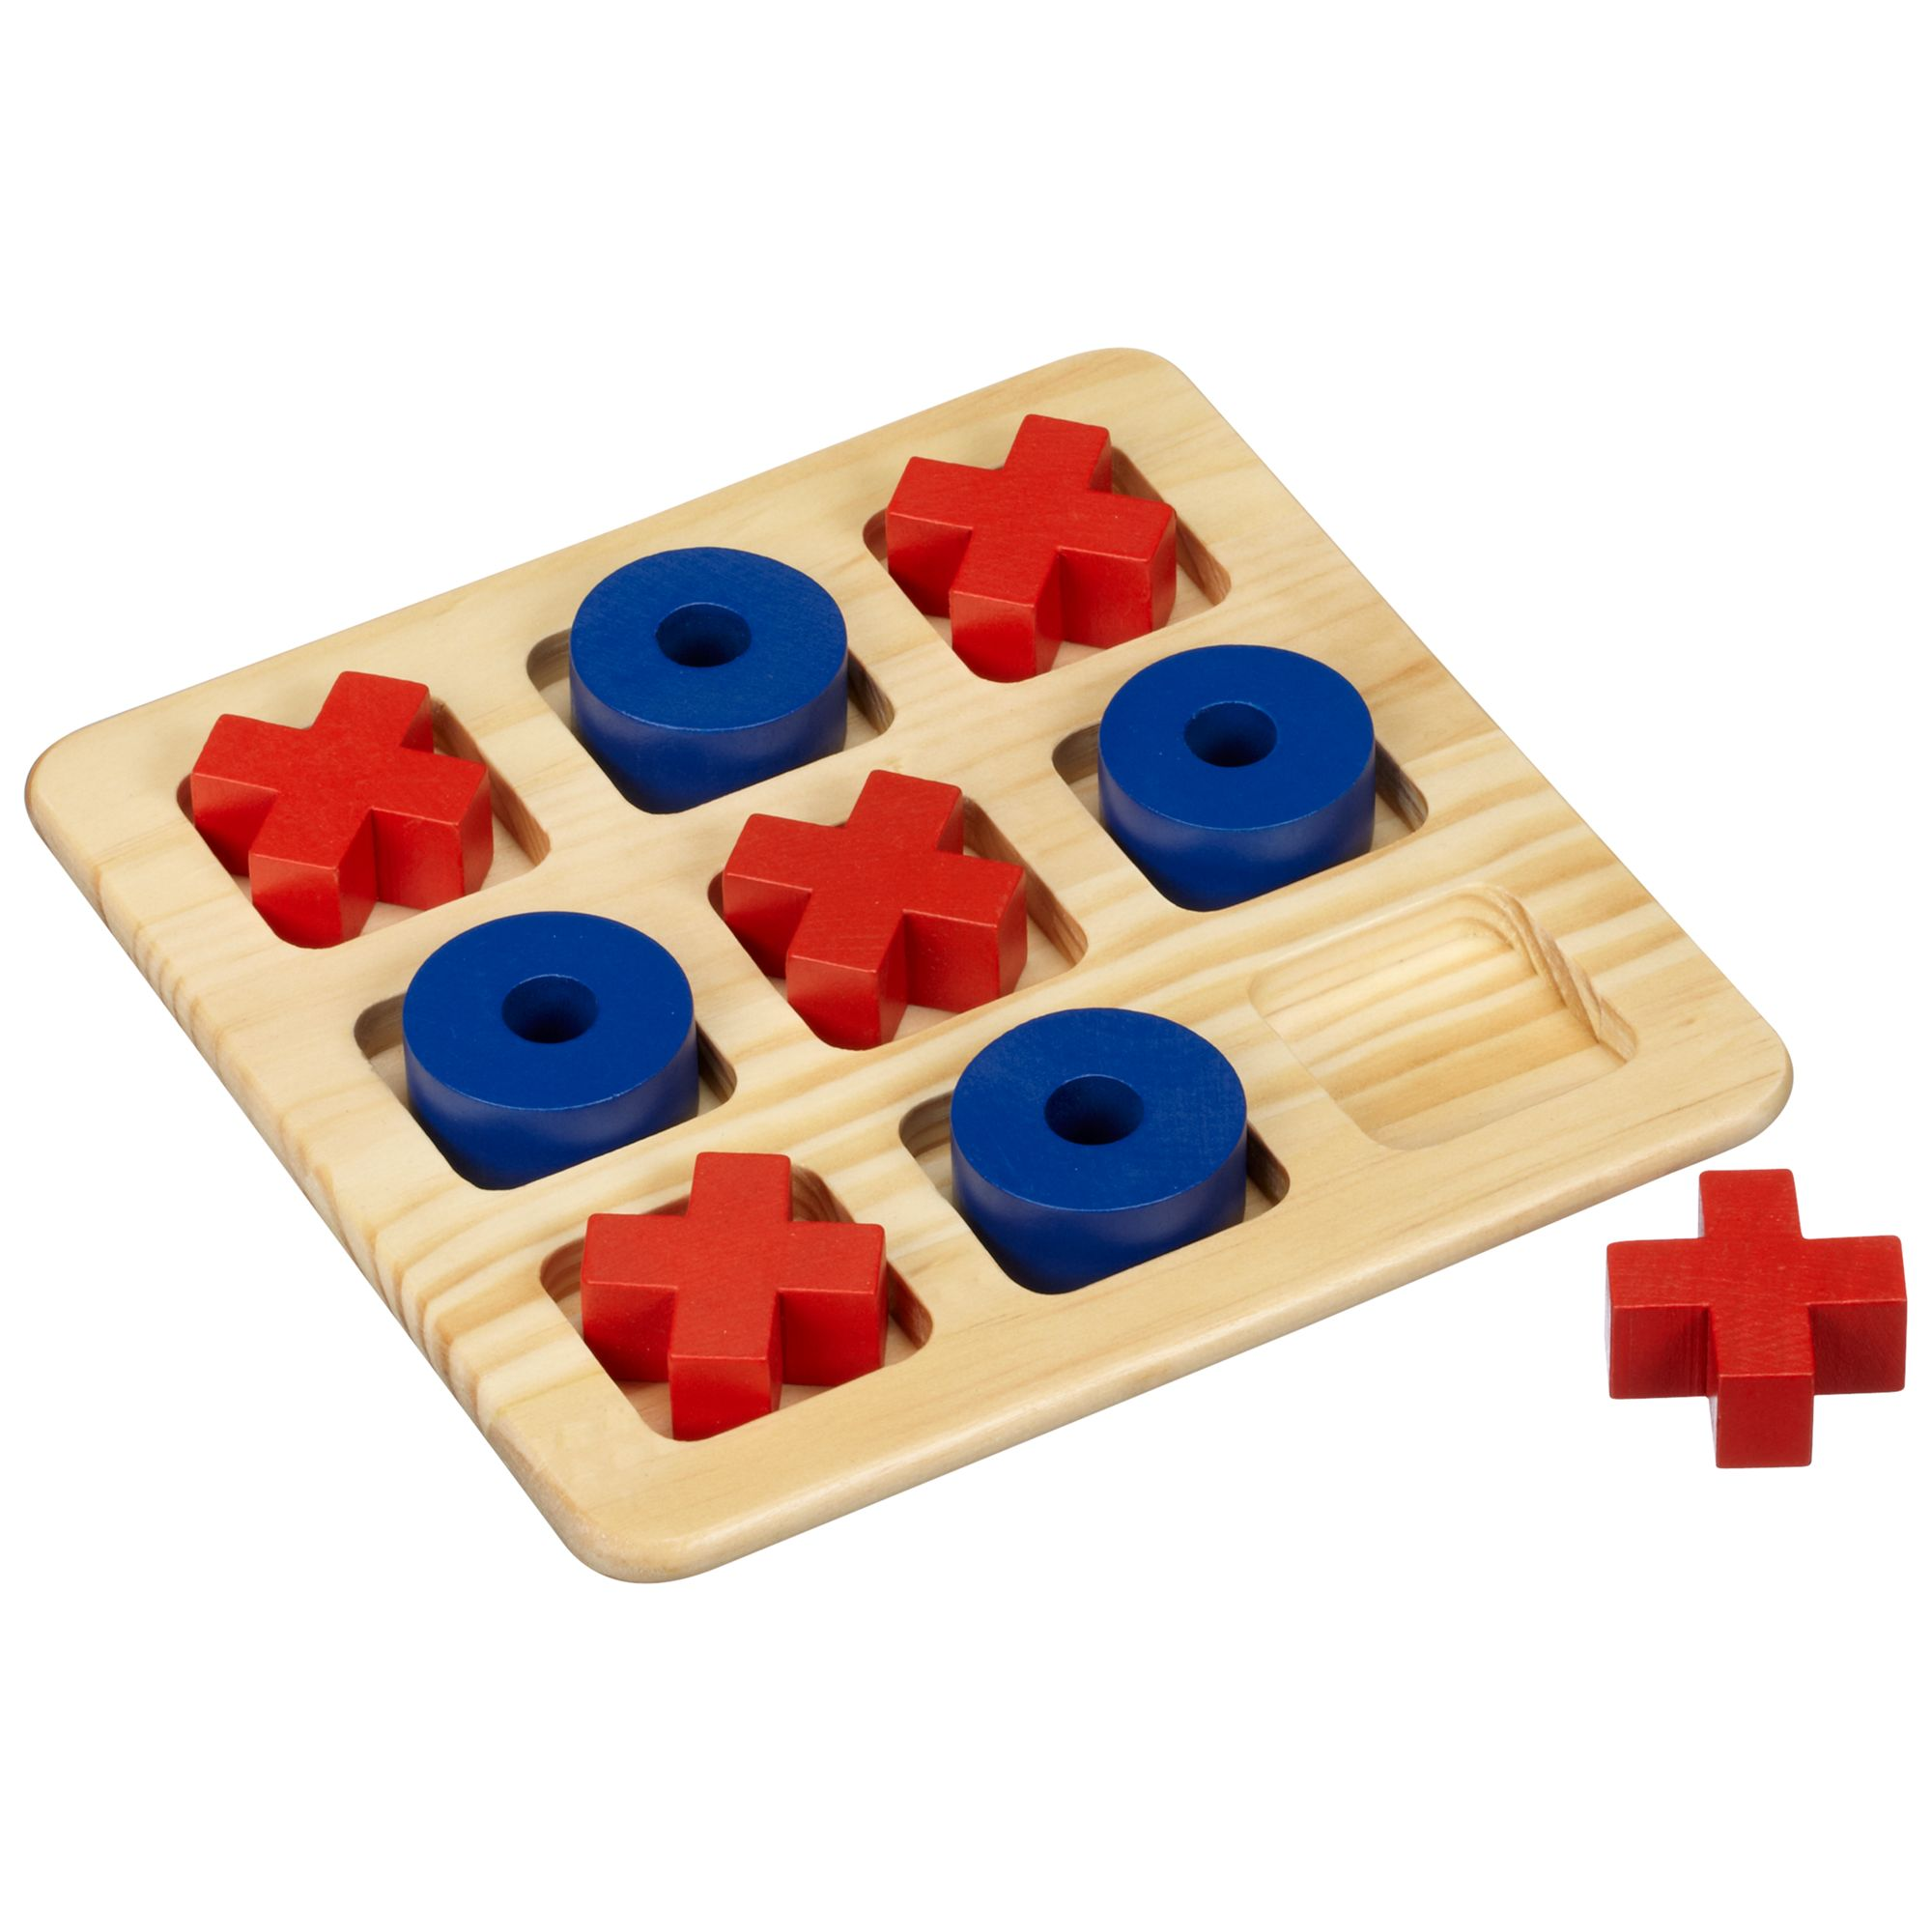 John Lewis Noughts and Crosses Game